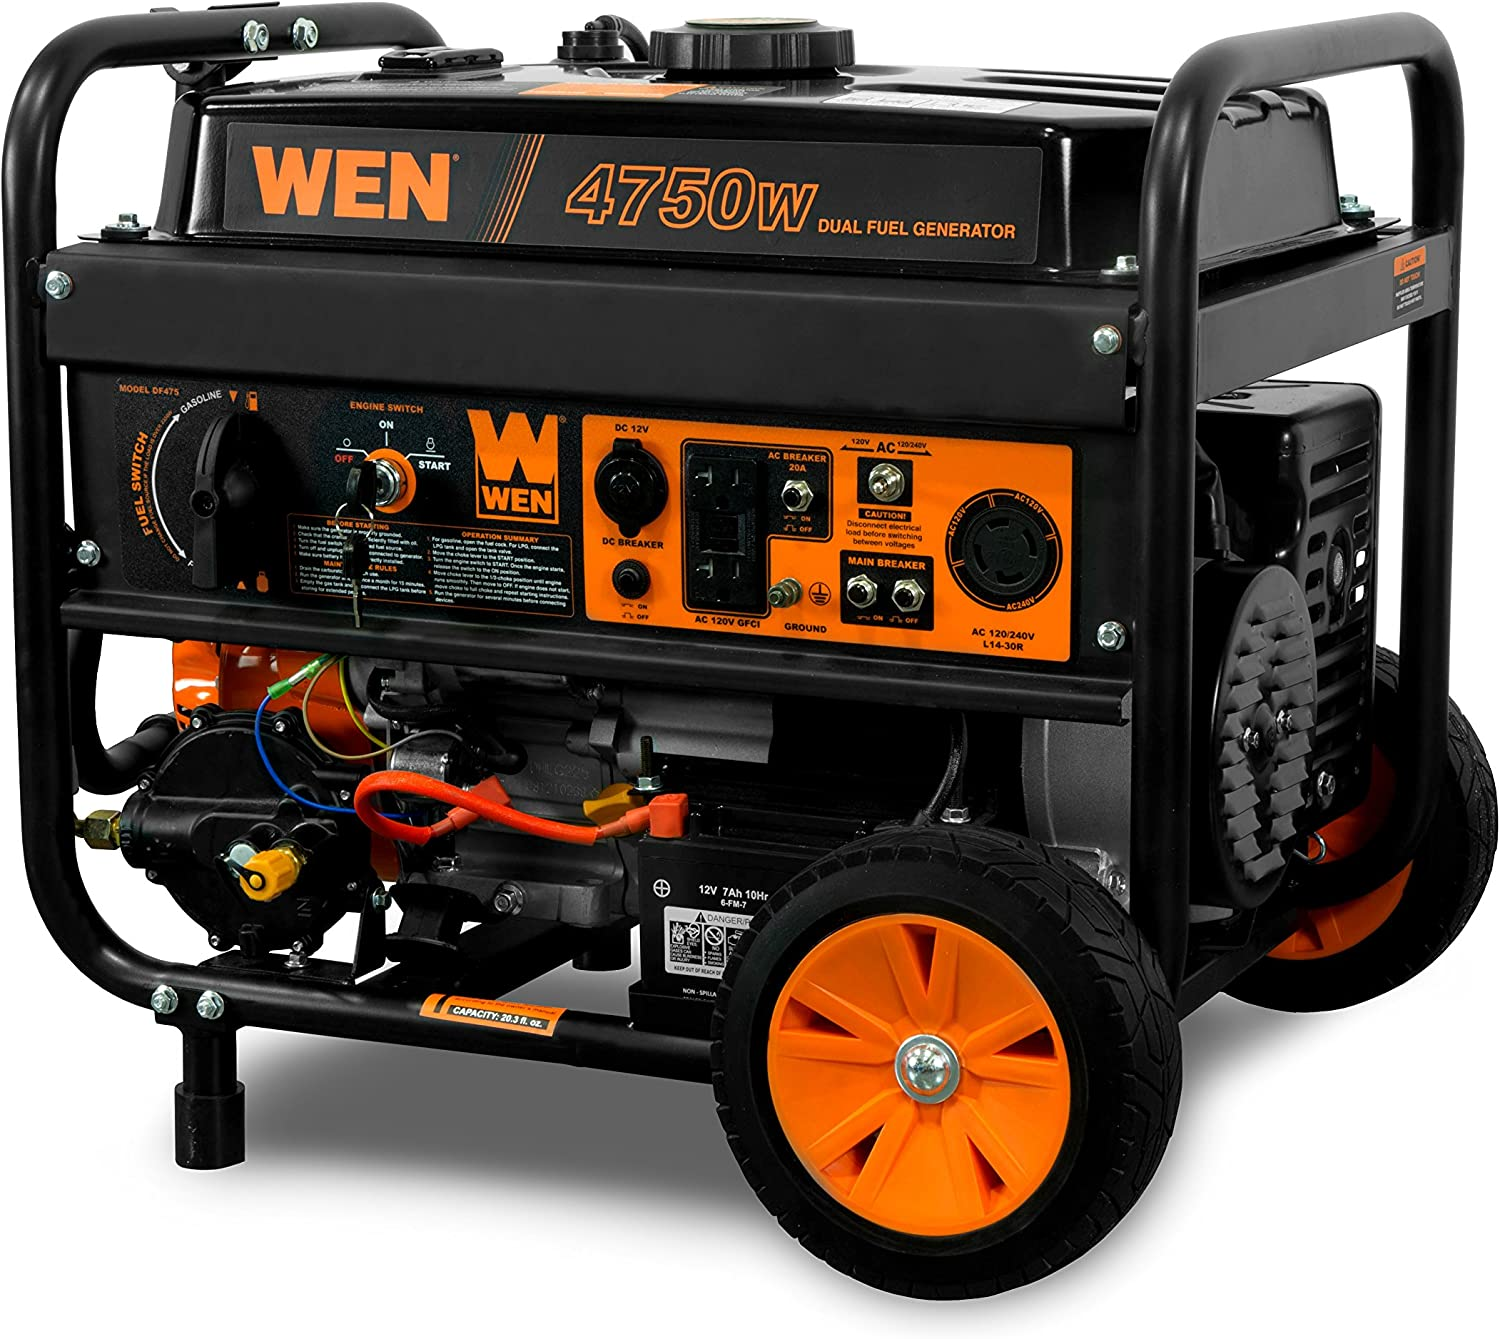 Best Home Generators For Power Outages 2020 (Top 10) 1